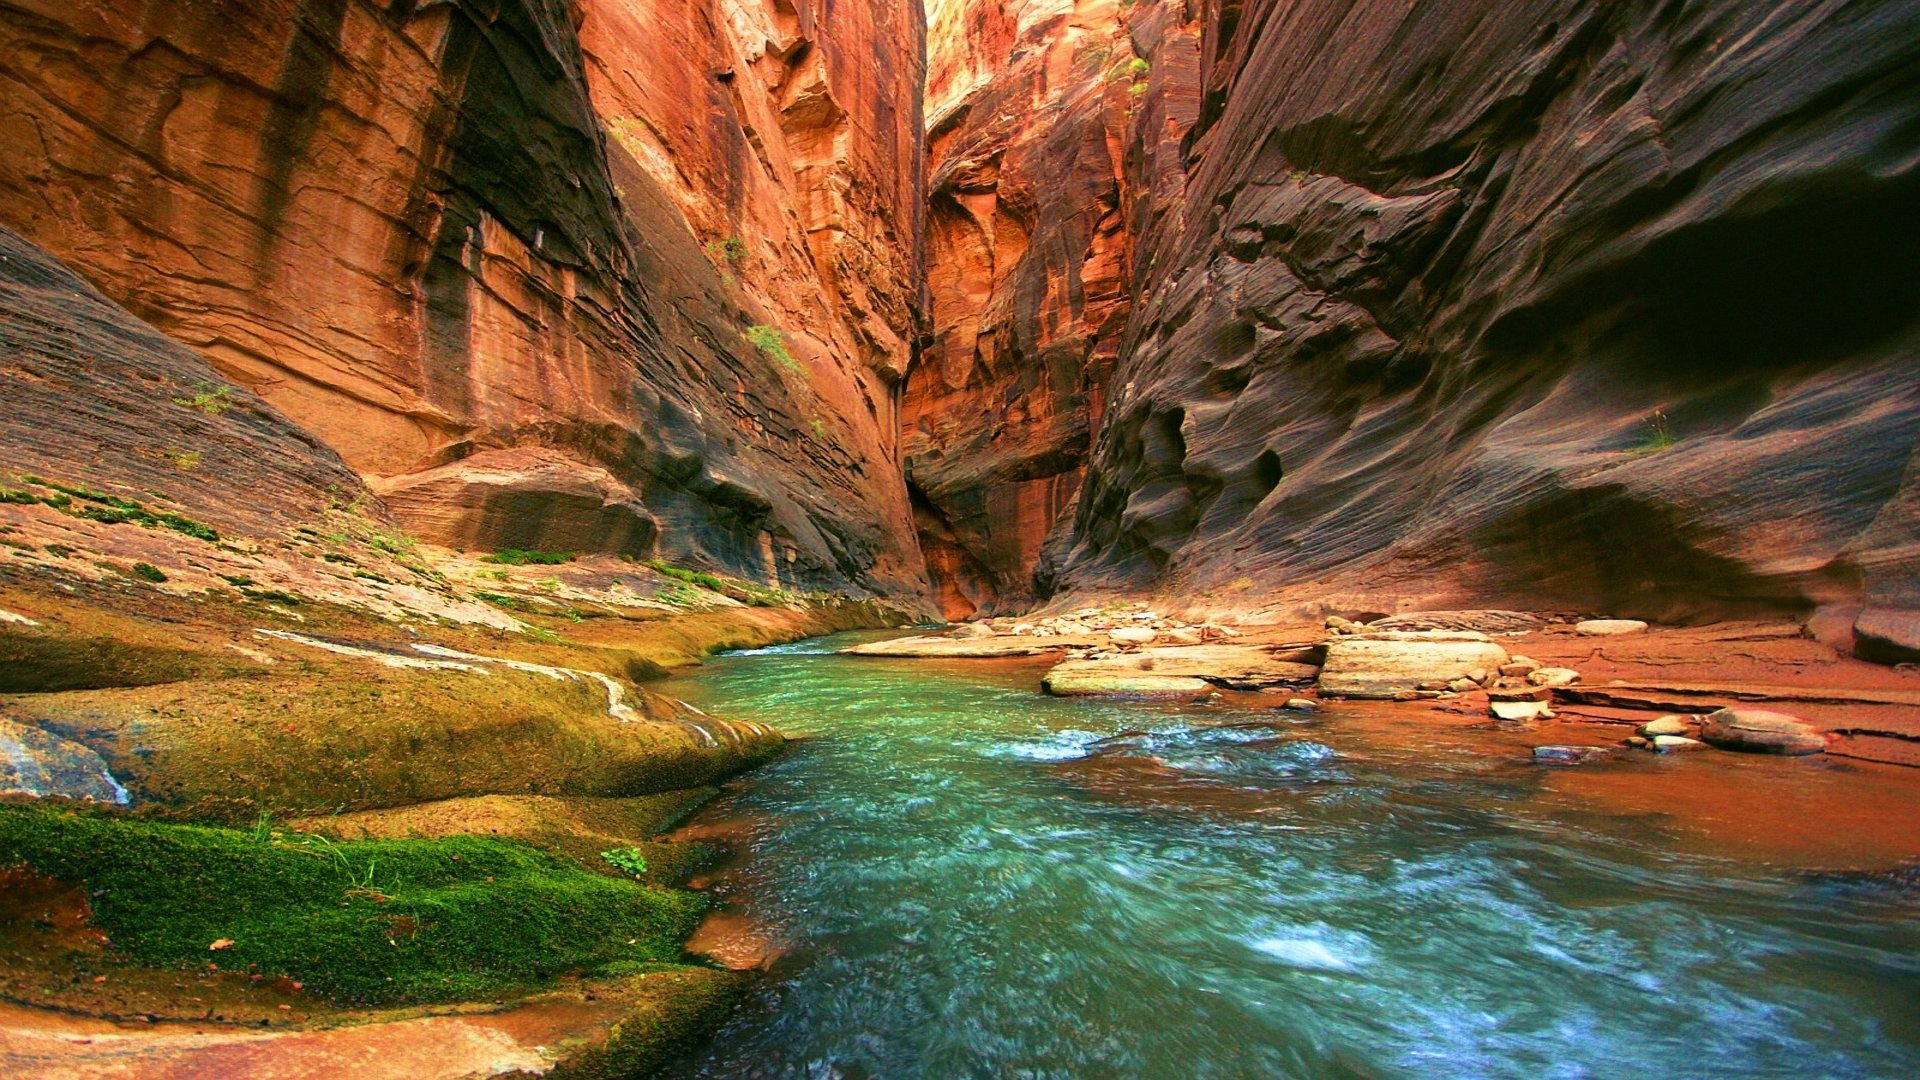 317 Canyons HD Wallpapers Background Images 1920x1080